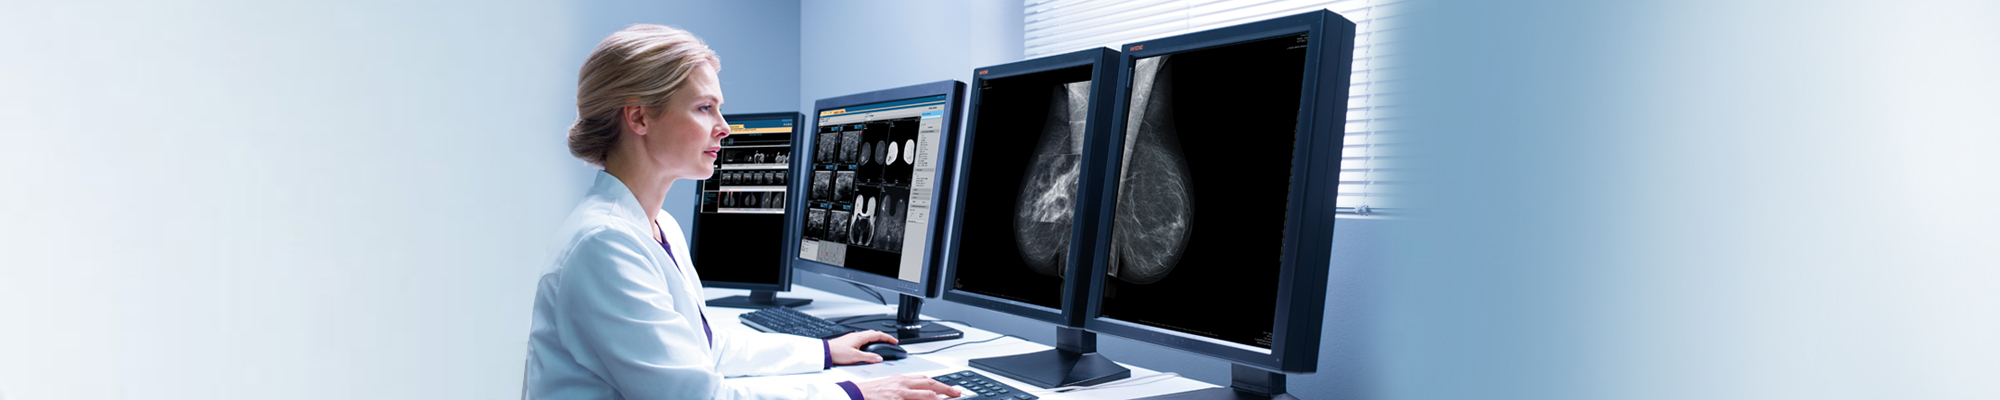 Radiological Imaging and Archiving System (PACS)